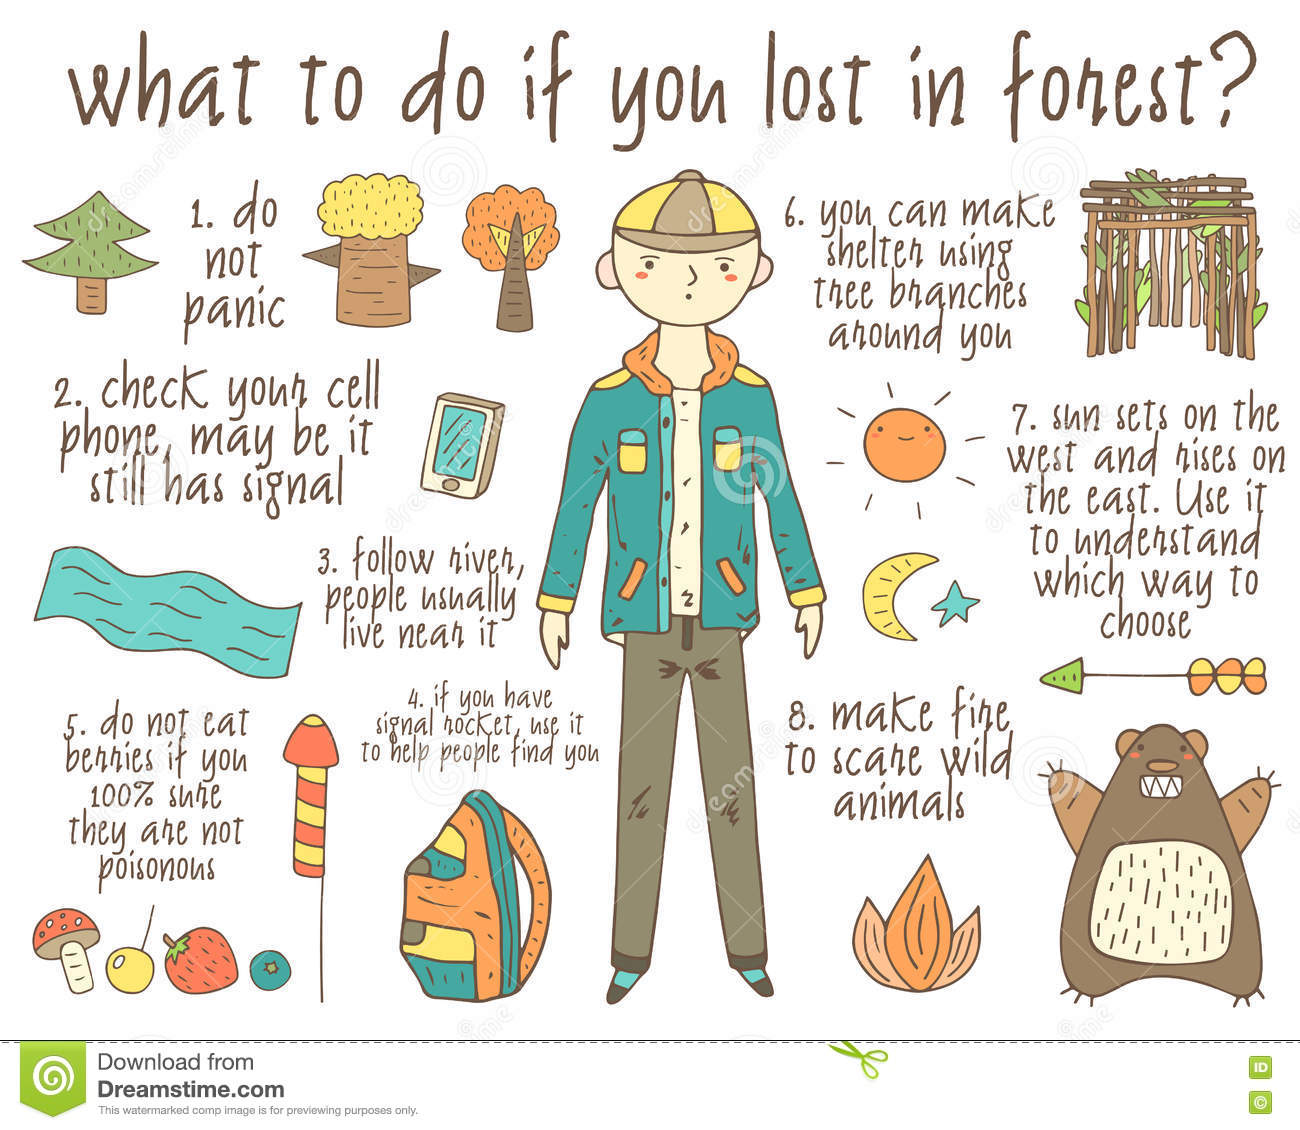 What to eat in the forest